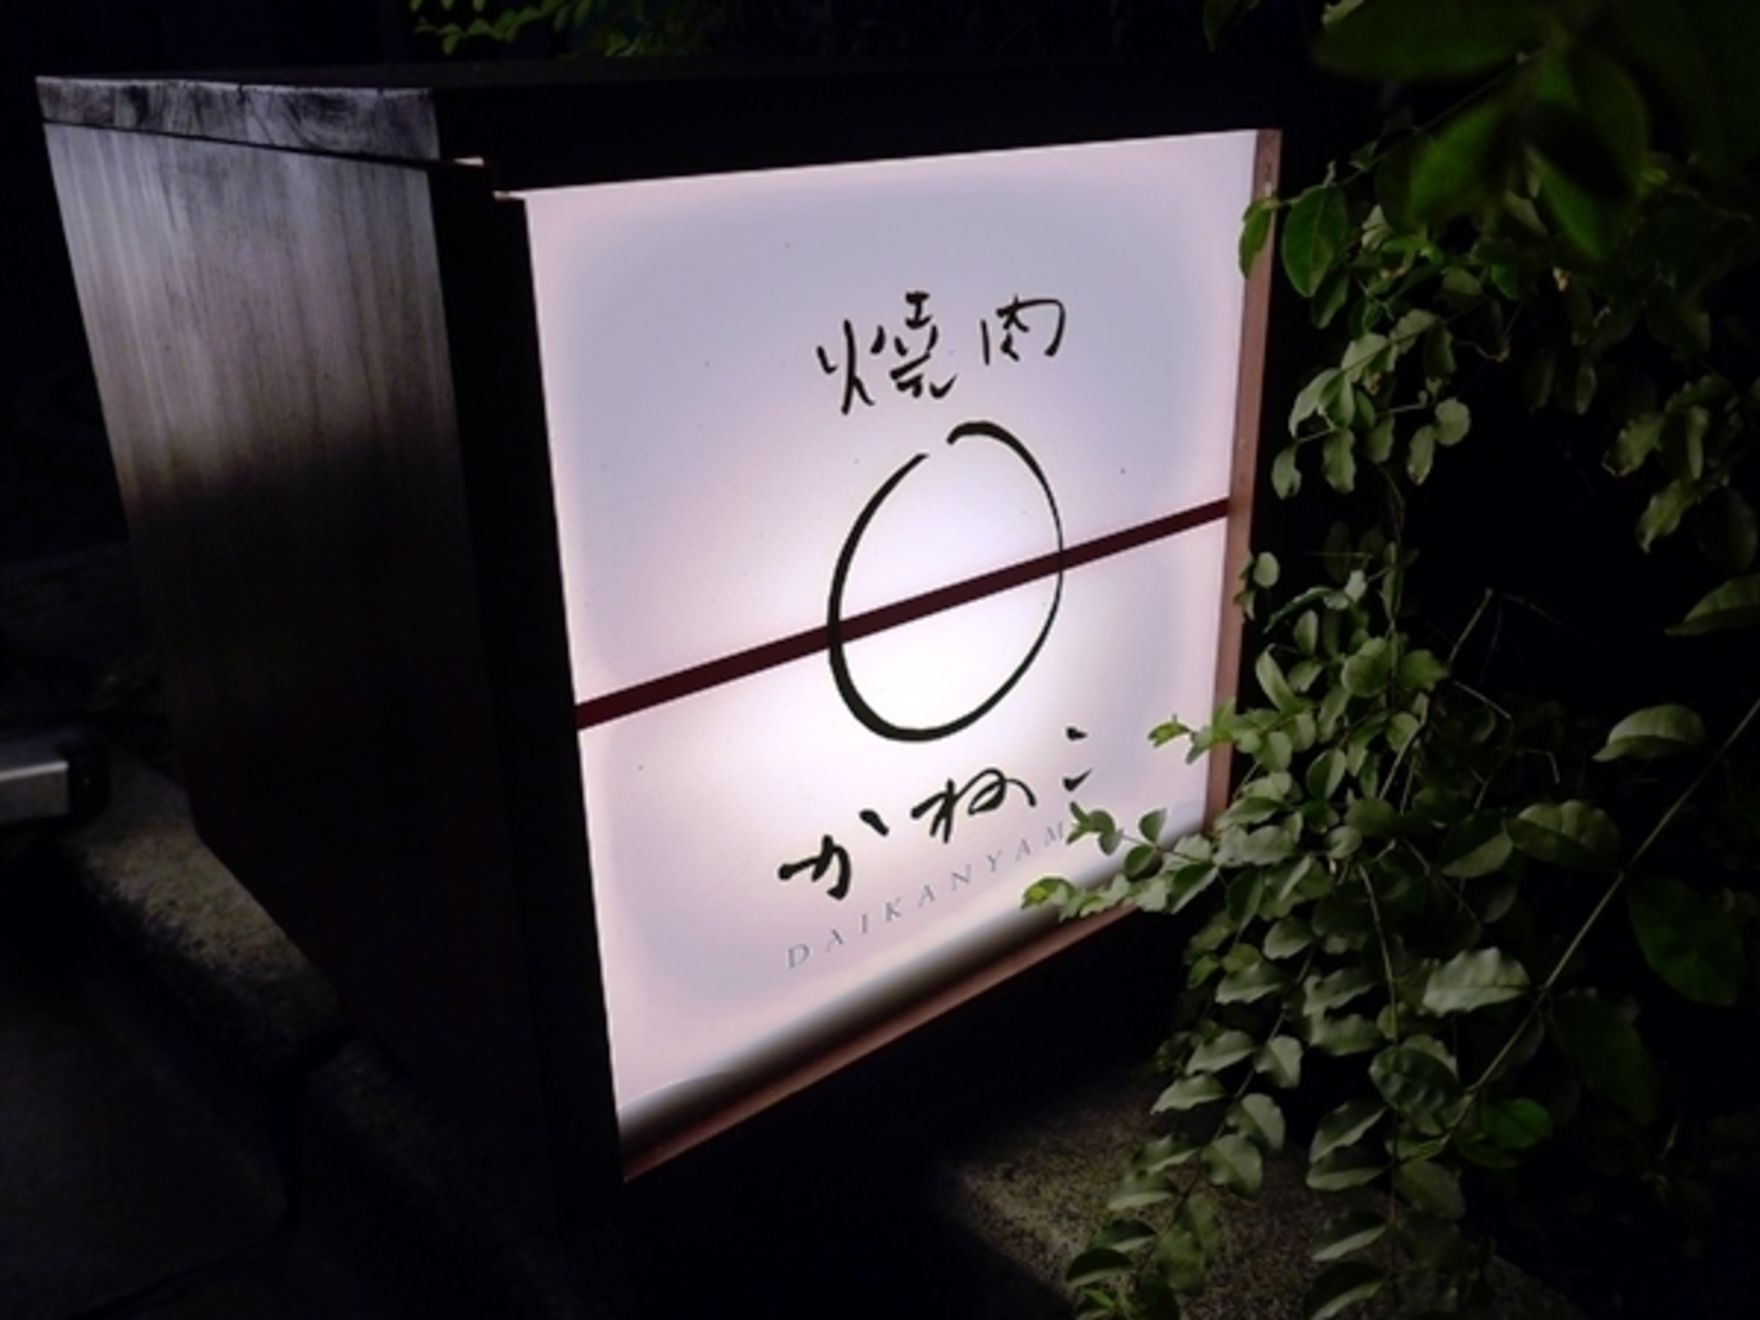 Kaneko entrance sign